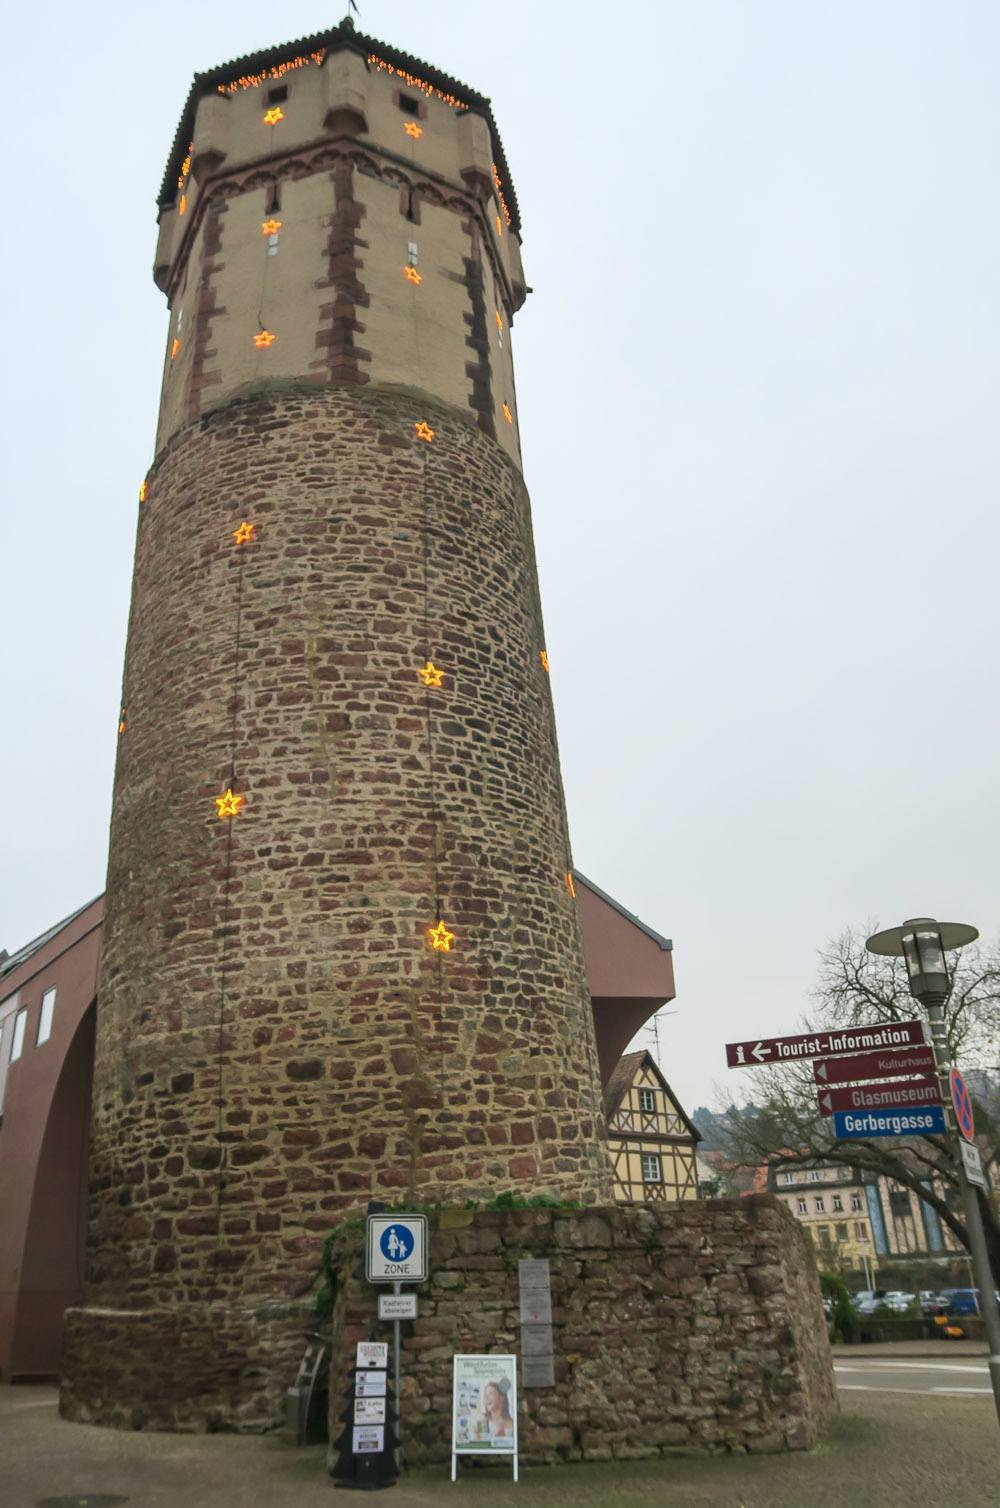 The Pointed Tower of Wertheim leans like the Leaning Tower of Pisa... kind of.